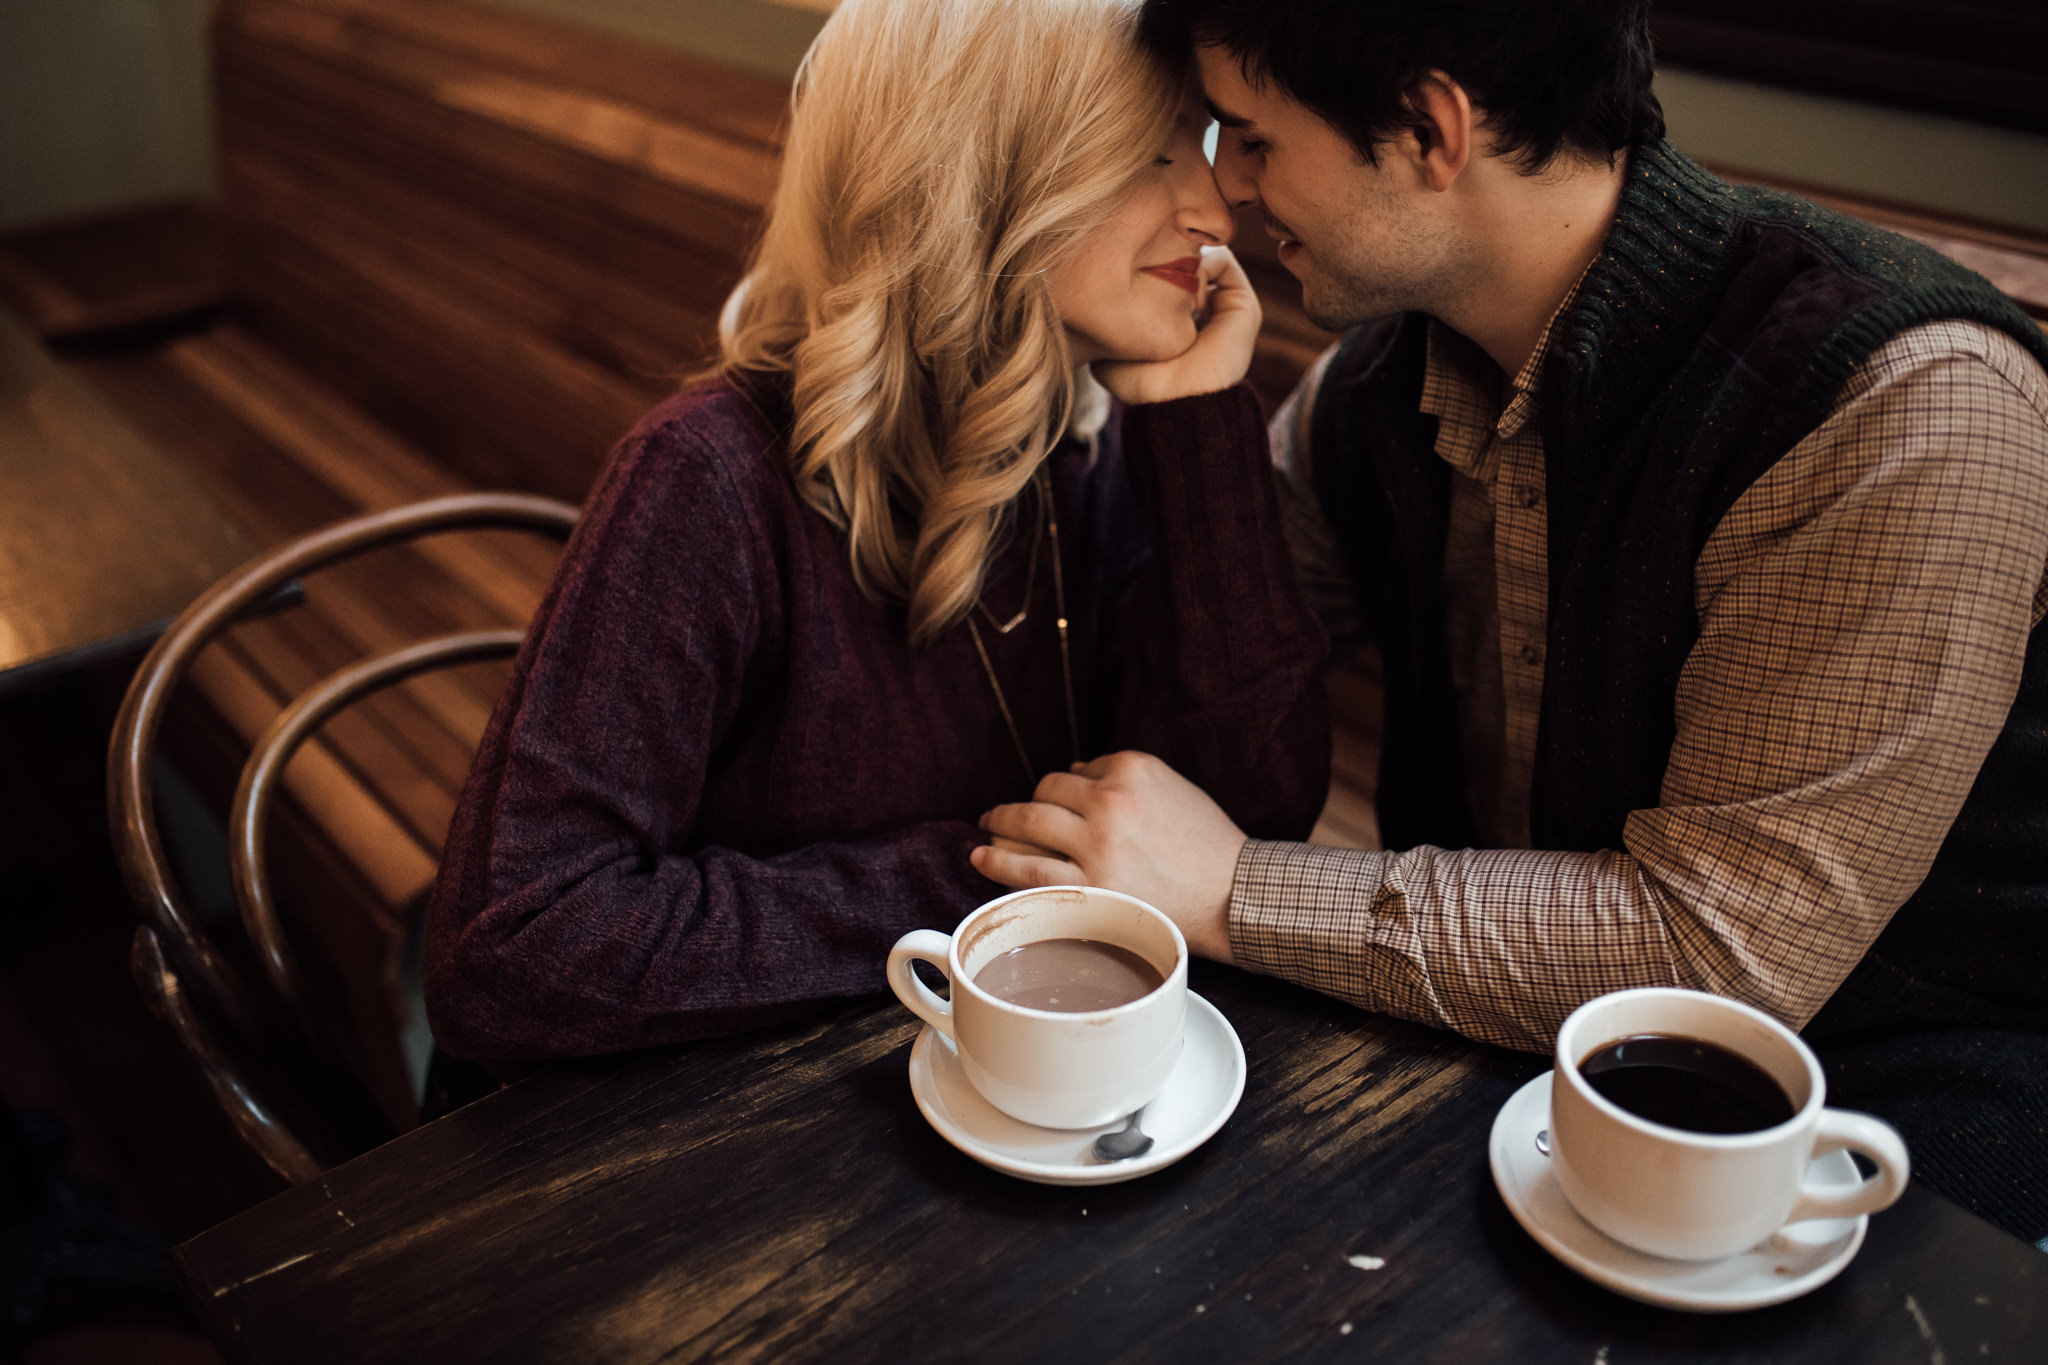 memphis-wedding-photographer-cassie-cook-photography-cafe-keough-engagement-photoshoot-coffee-engagement-20.jpg